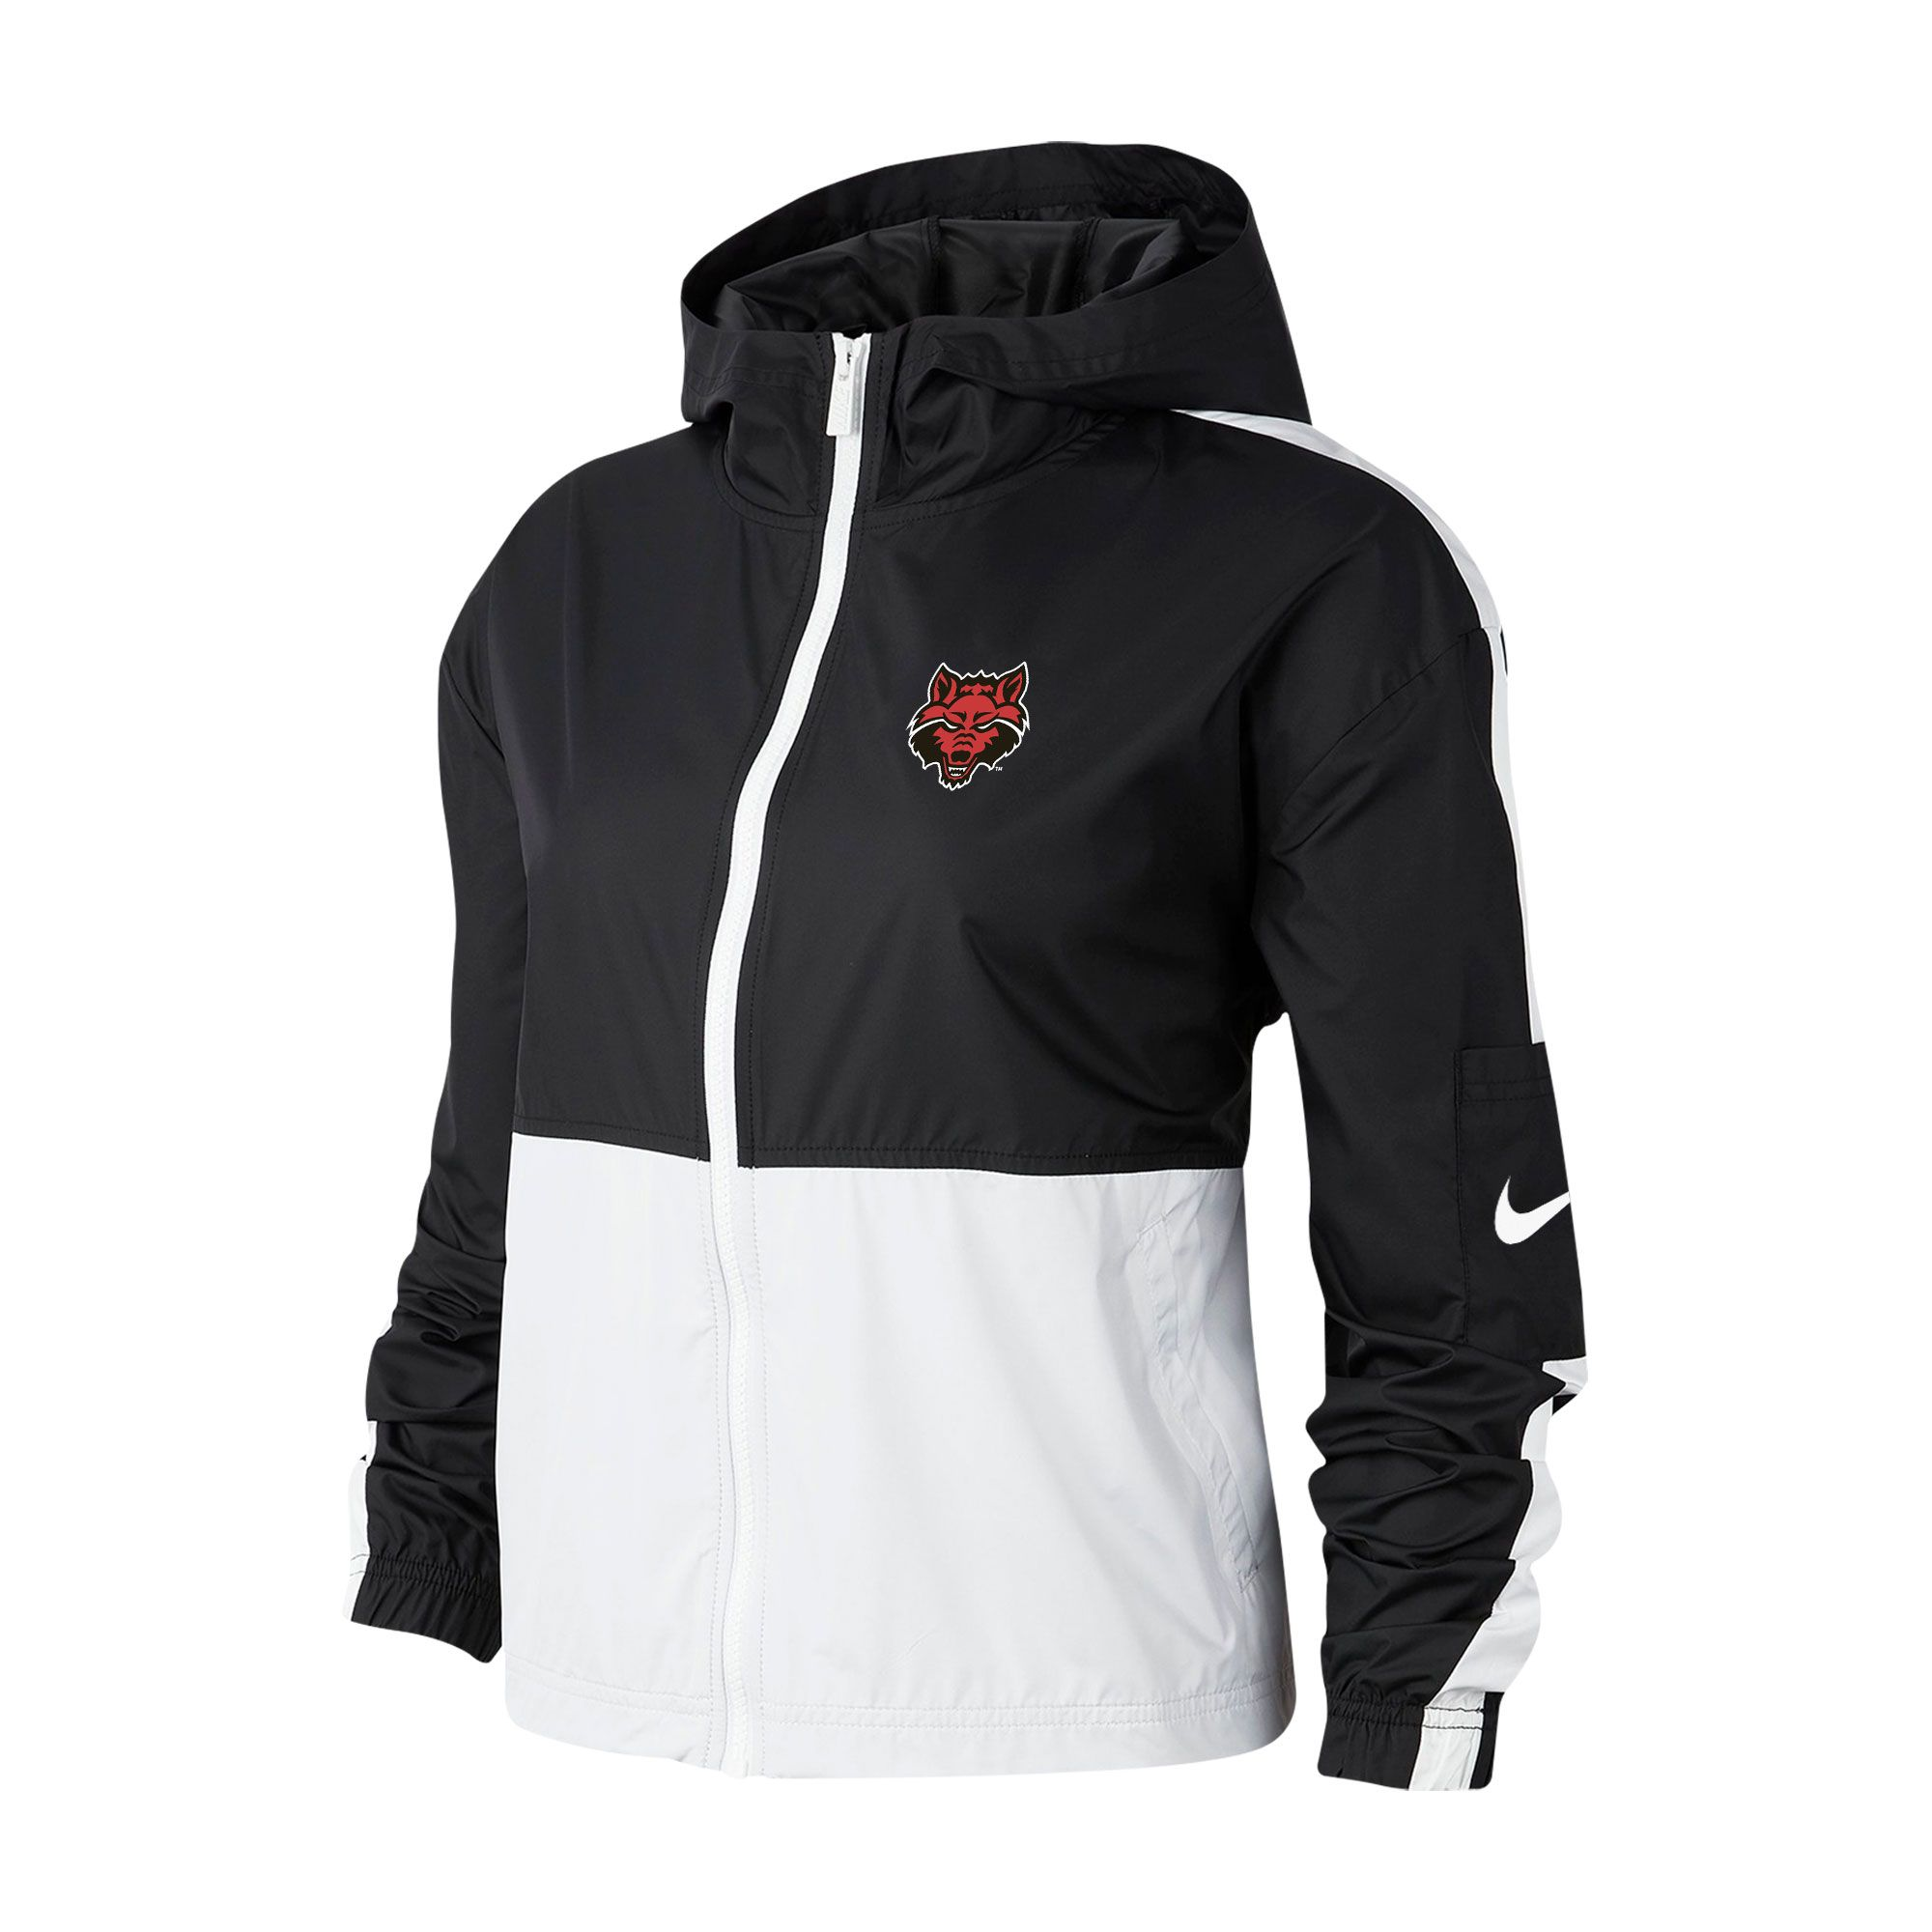 Red Wolves NSW Core Woven Jacket